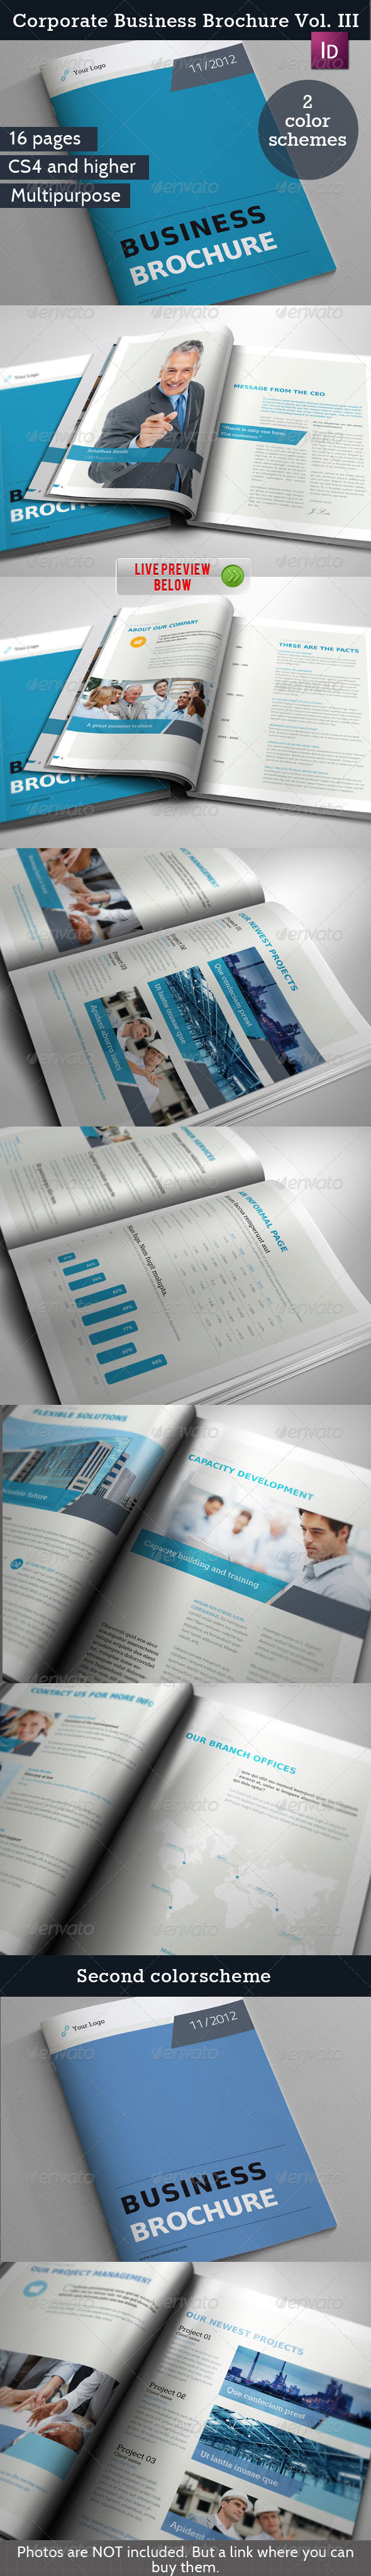 Business Brochure / Report Vol. II - Corporate Brochures